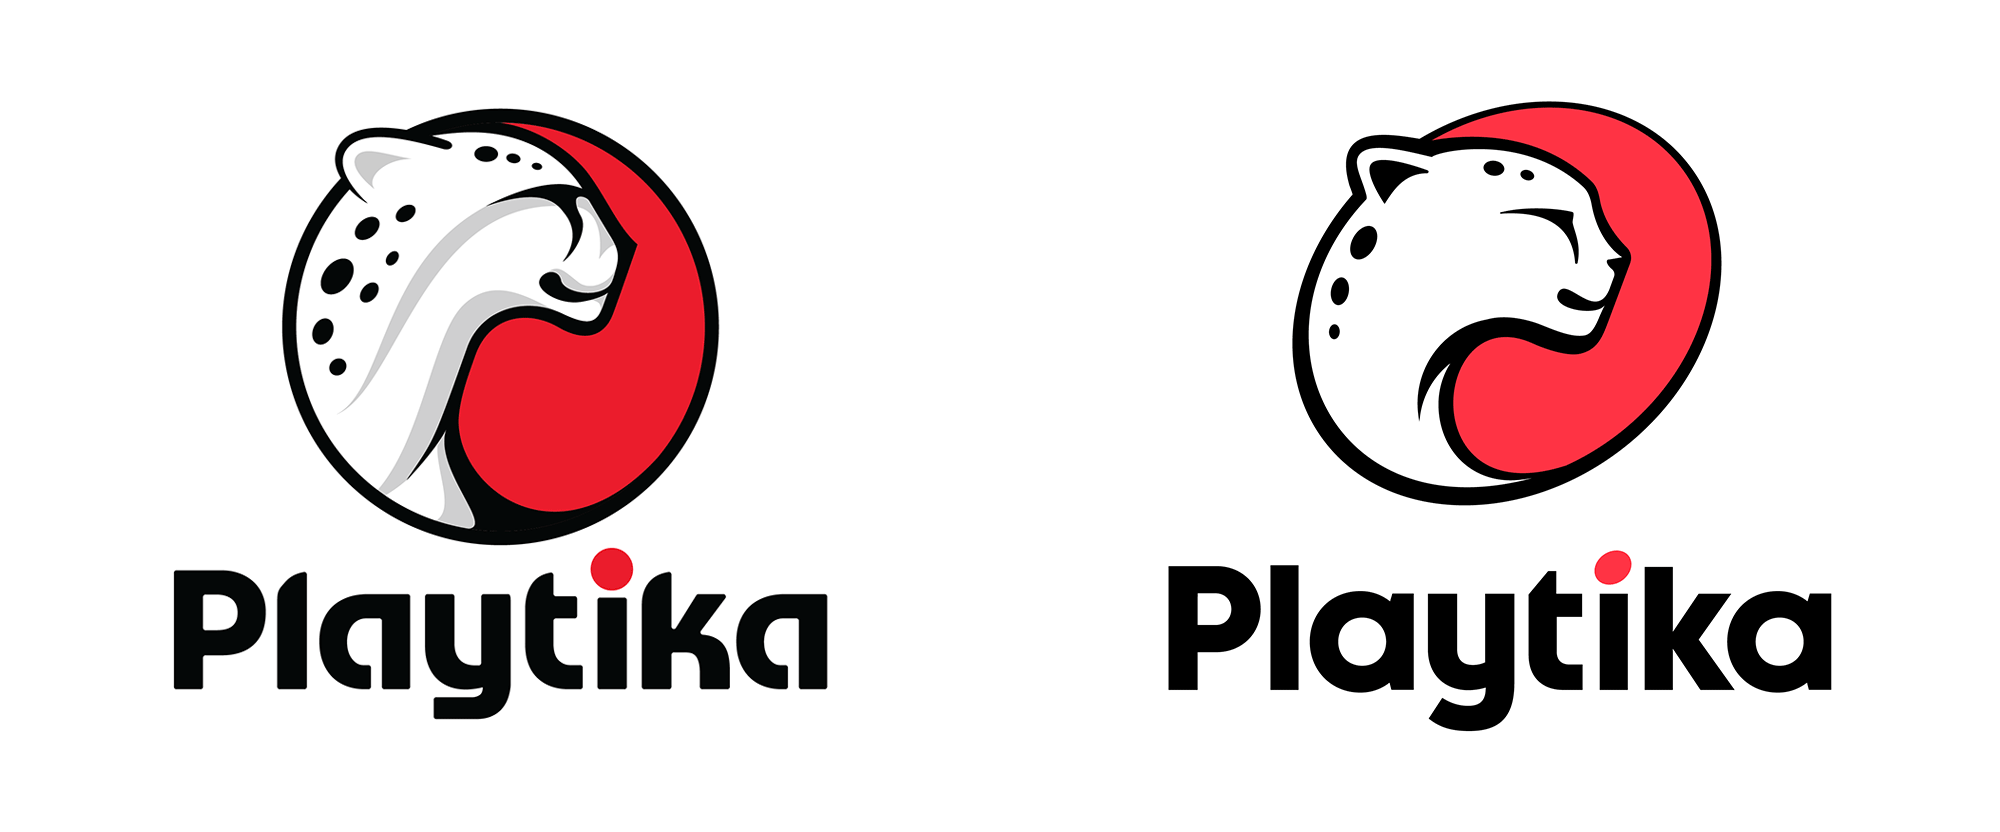 New Logo for Playtika